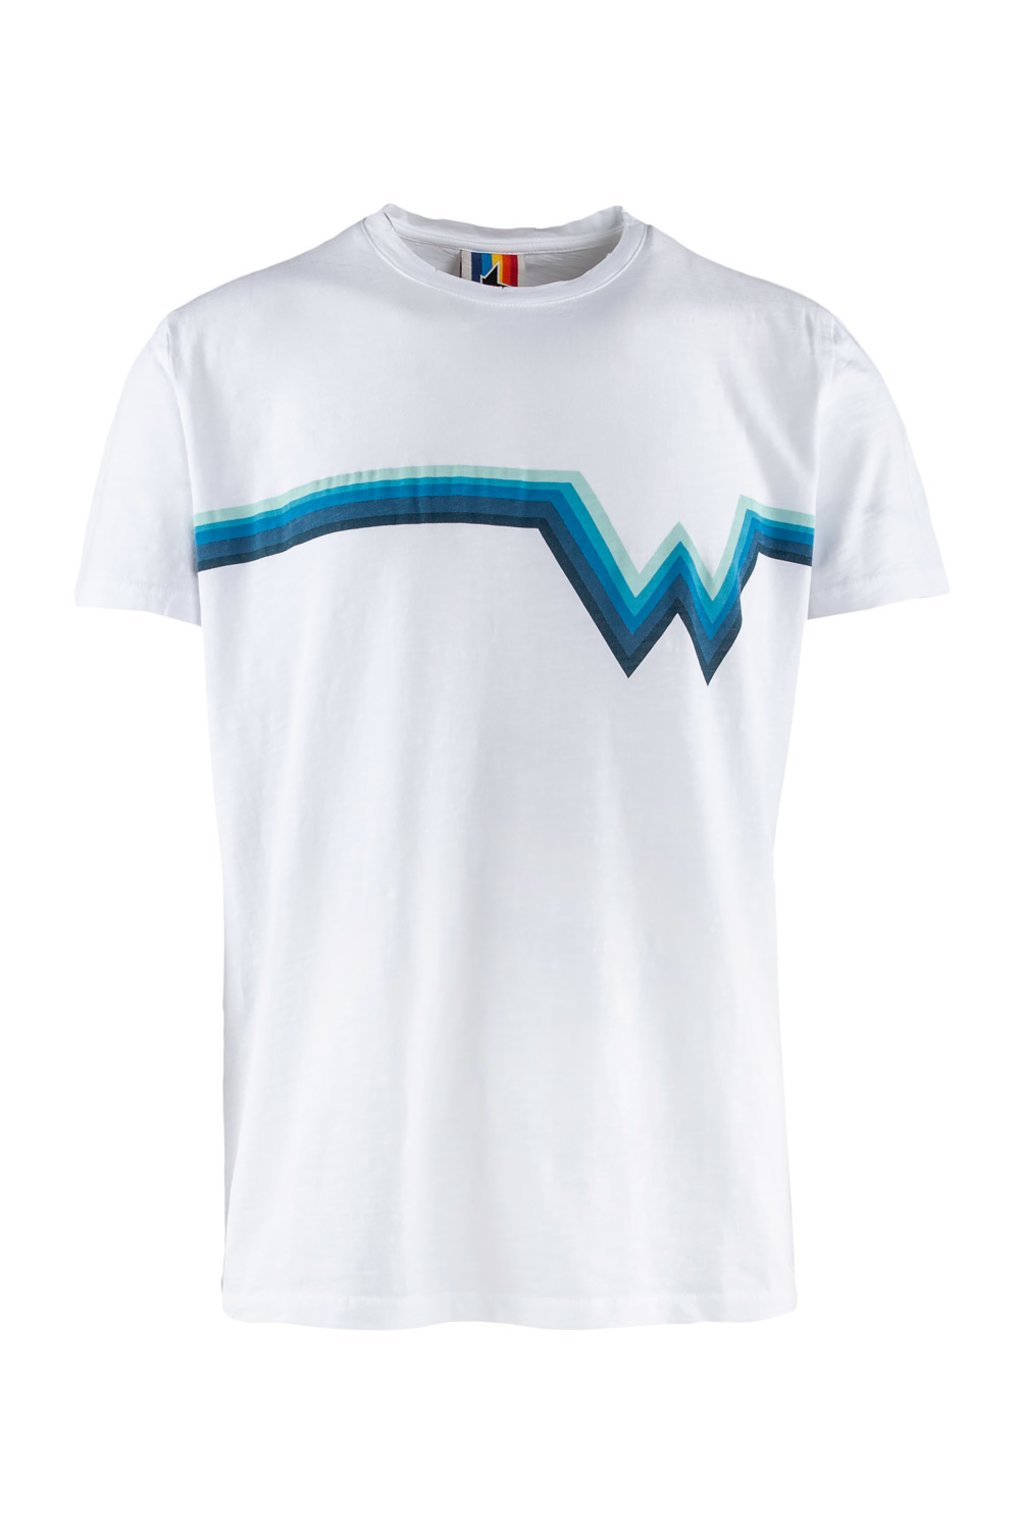 T-shirt degradé Waves x Macchia J.